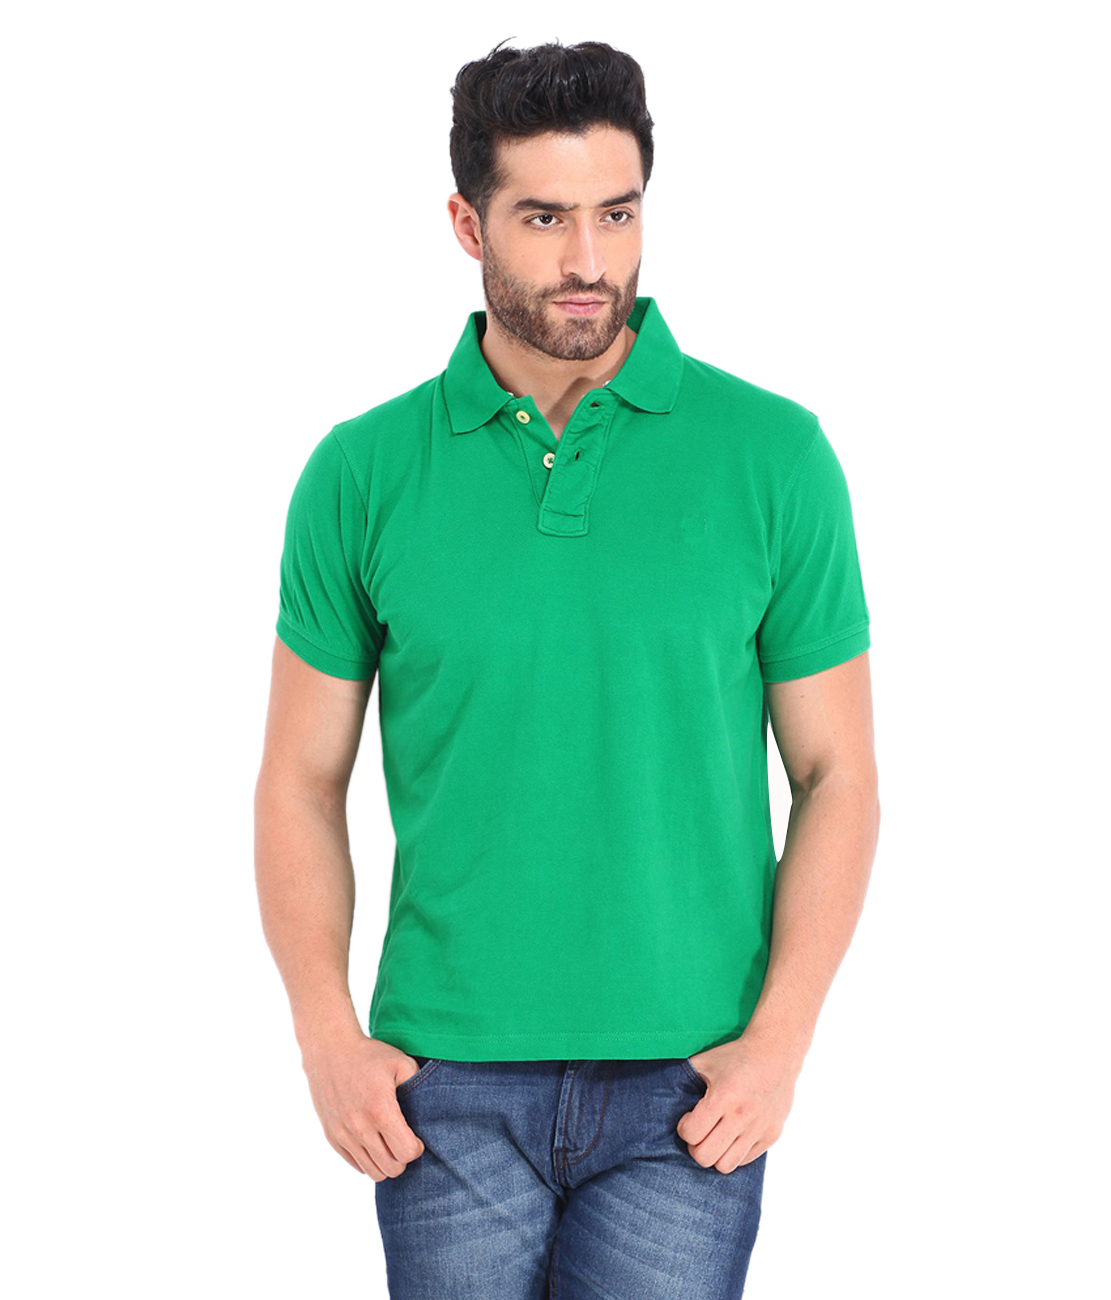 Funky Guys Polyester Cotton Green Plain Polo T Shirt